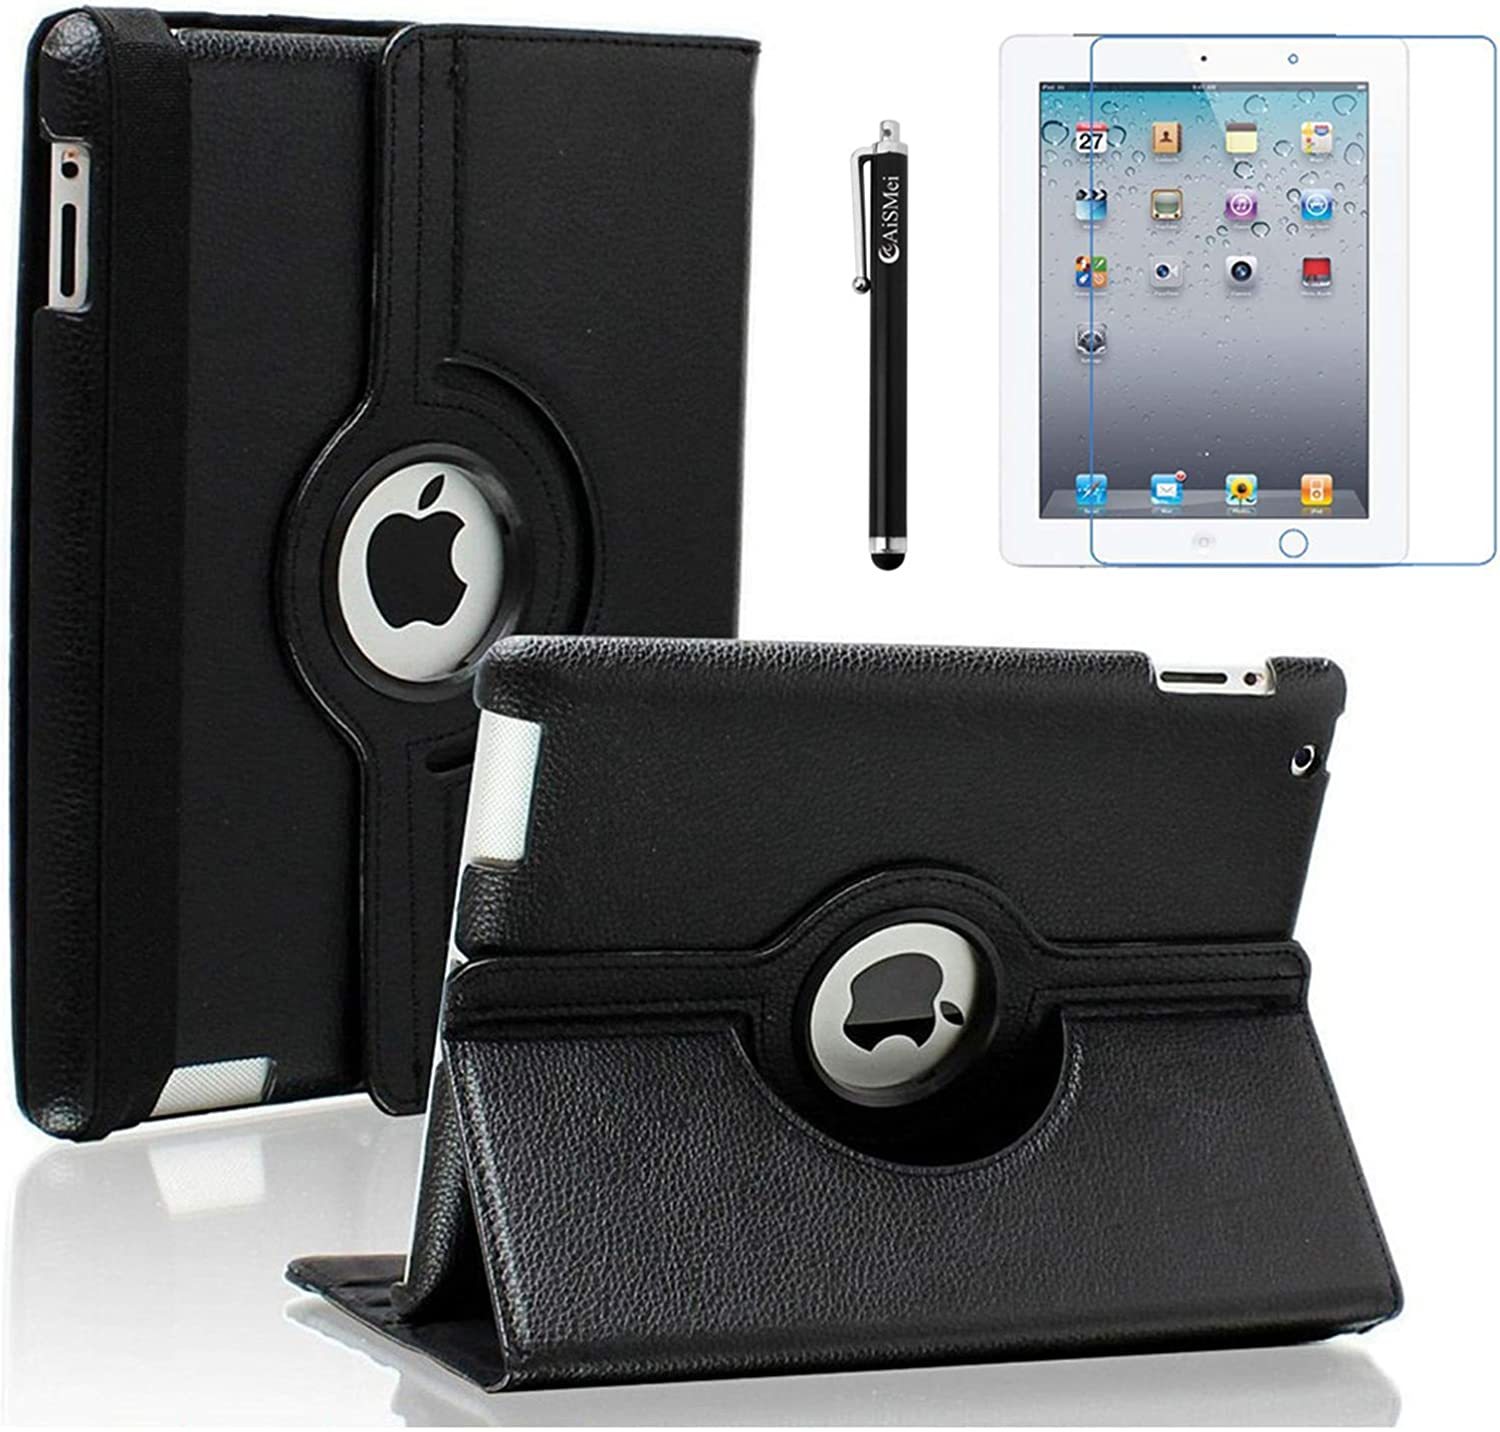 AiSMei Case for iPad 4 (2012), Rotating Stand Case Cover for 9.7-inch Apple iPad A1395, A1396, A1397, A1403, A1416, A1430, A1458, A1459, A1460, Bonus Stylus + Film, Black